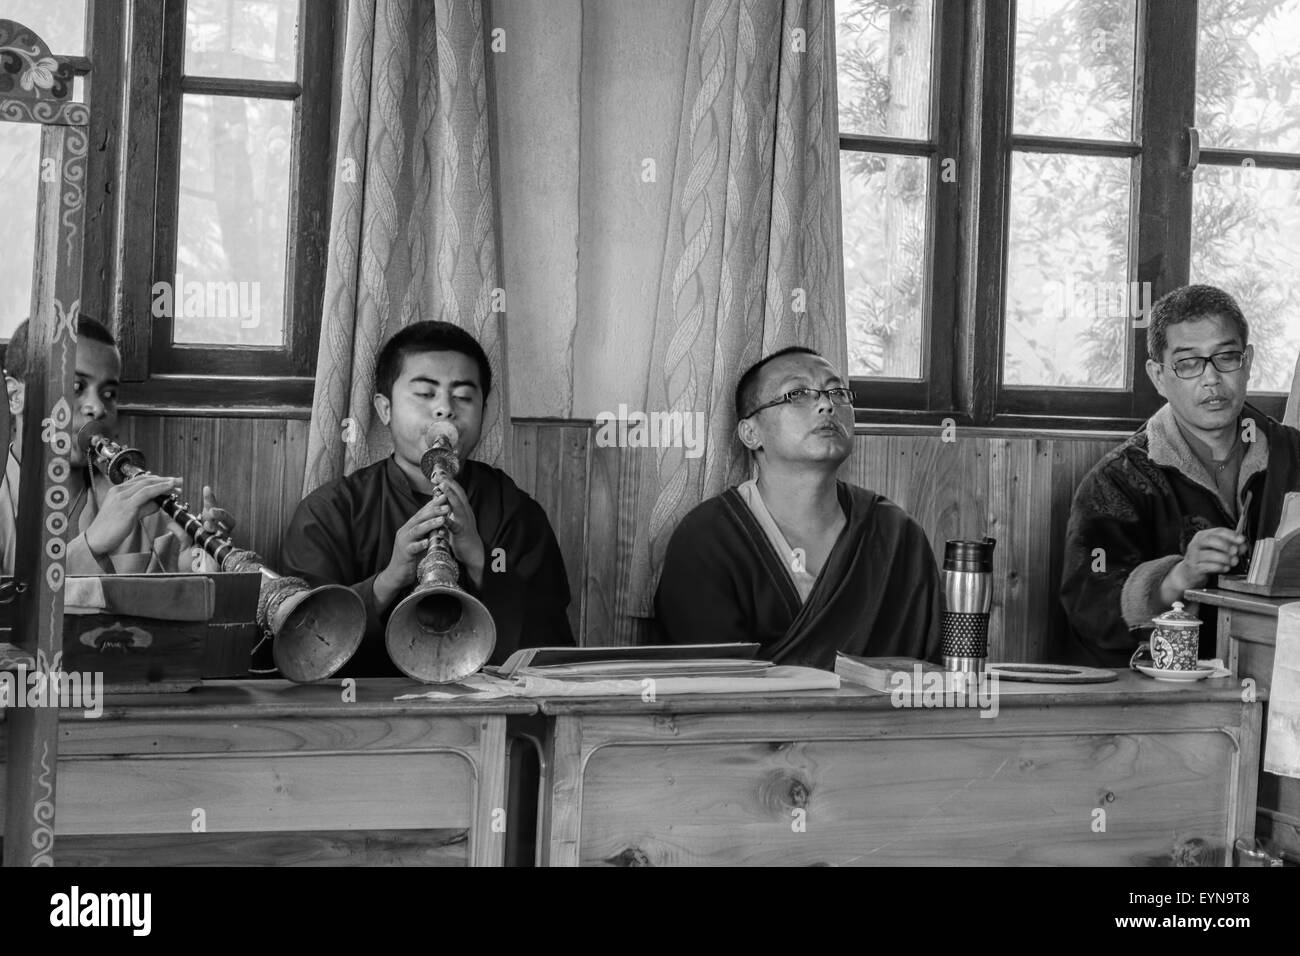 Buddhist priests, Lamas, praying inside a monastery in India, playing traditional flute, gong with copy space in - Stock Image